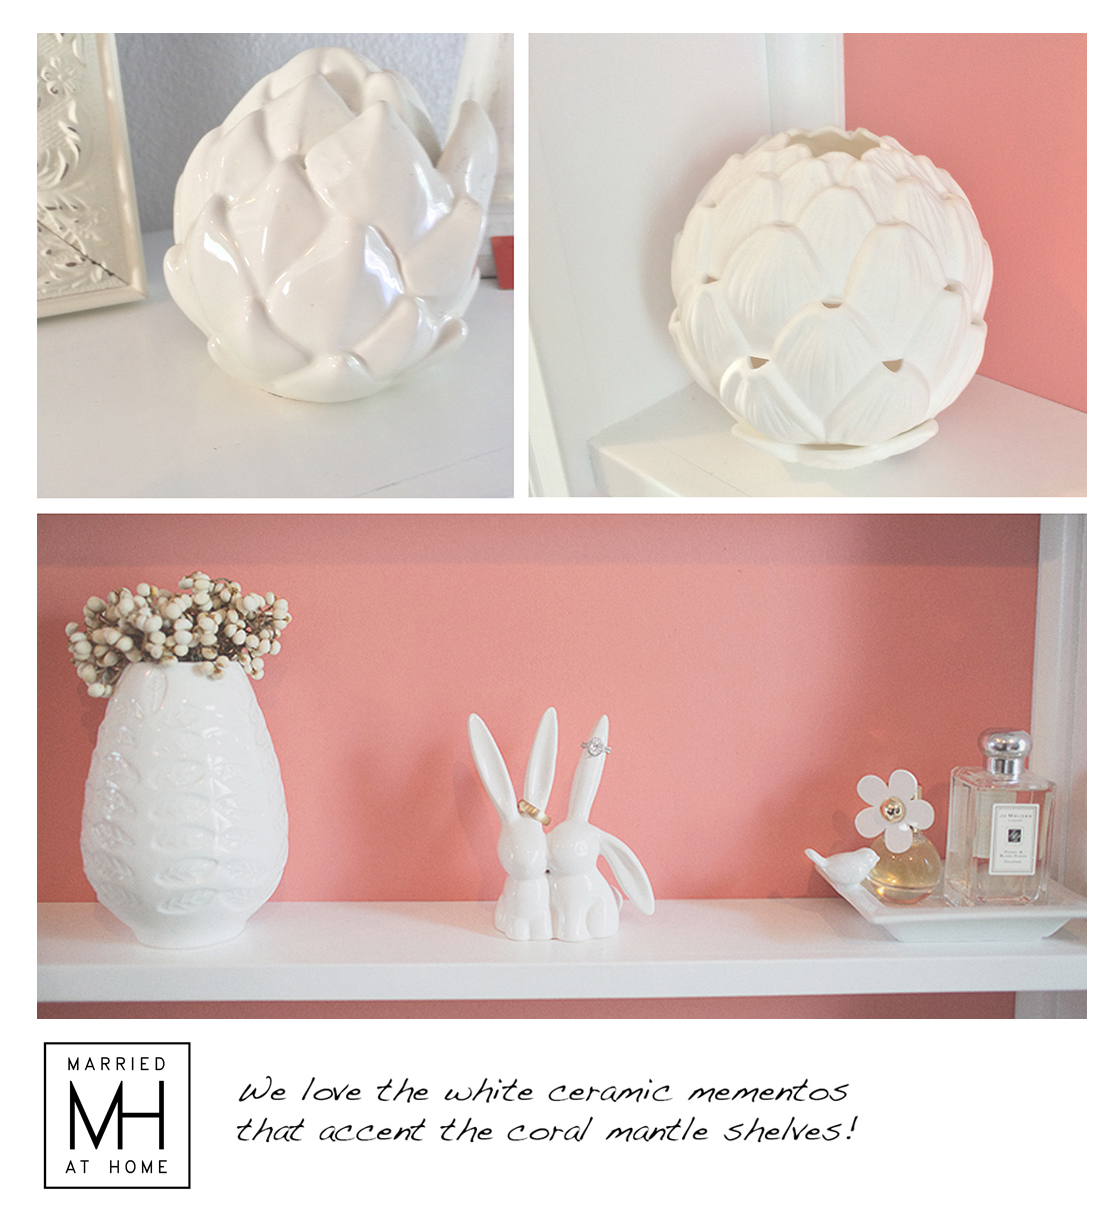 Our Bedroom Mantle | Married At Home